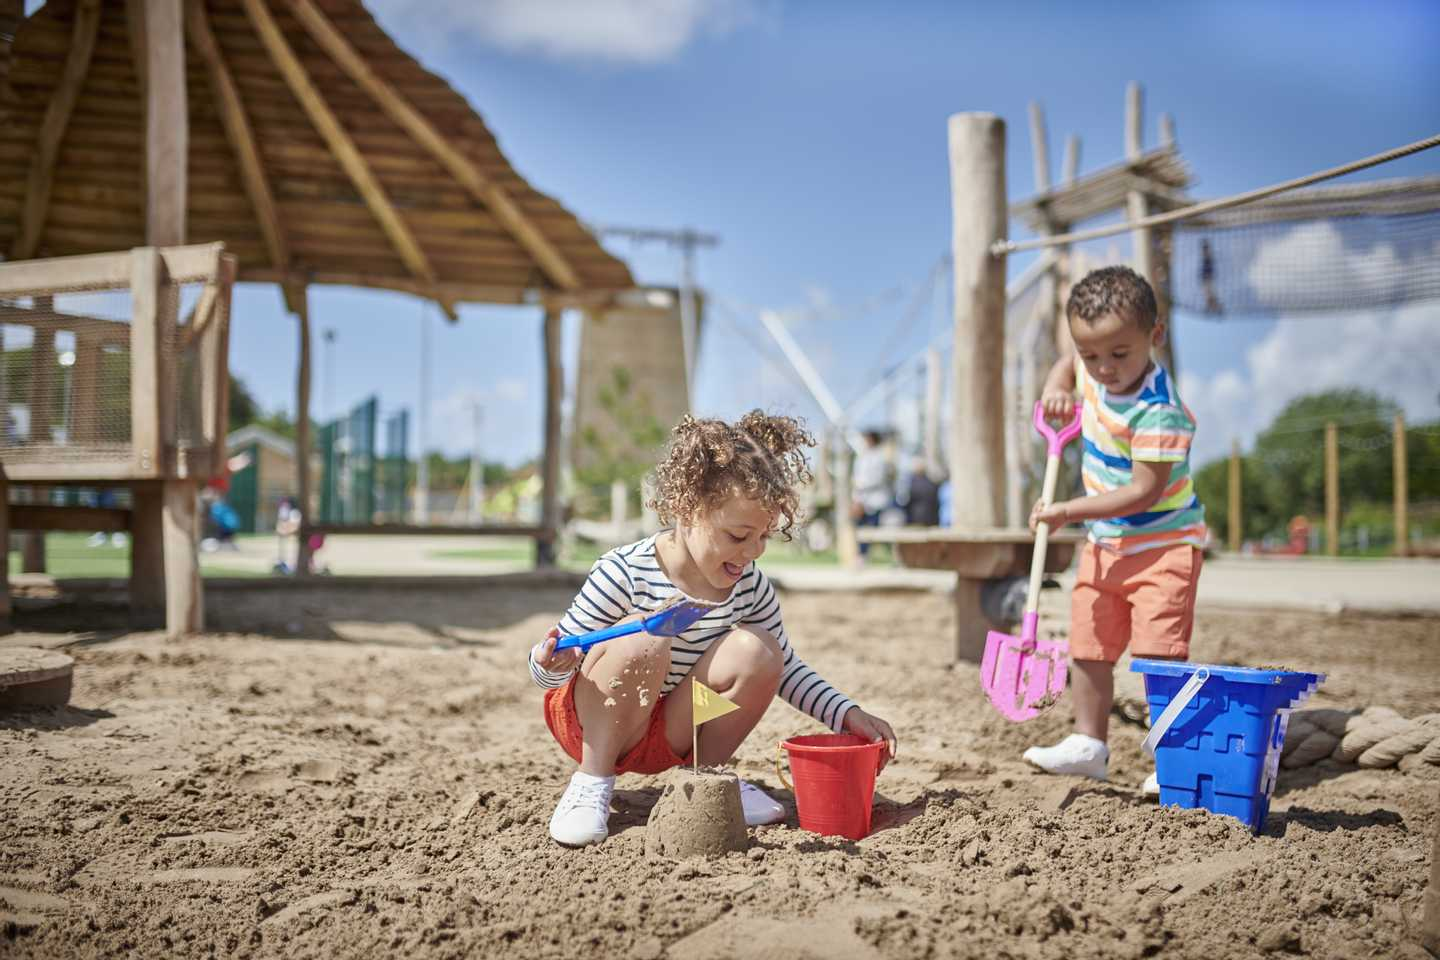 Representation of Sand Play